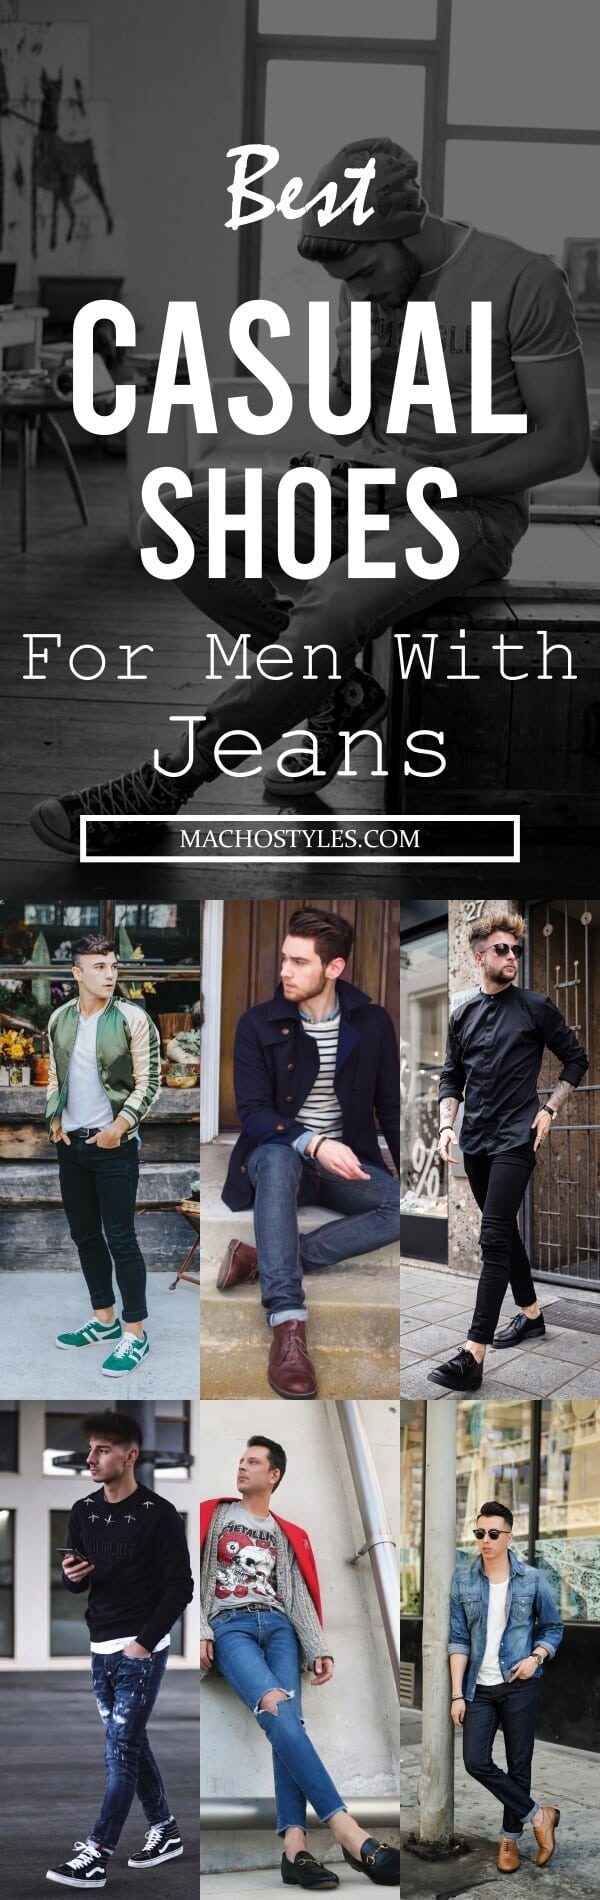 Best Casual Shoes For Men With Jeans